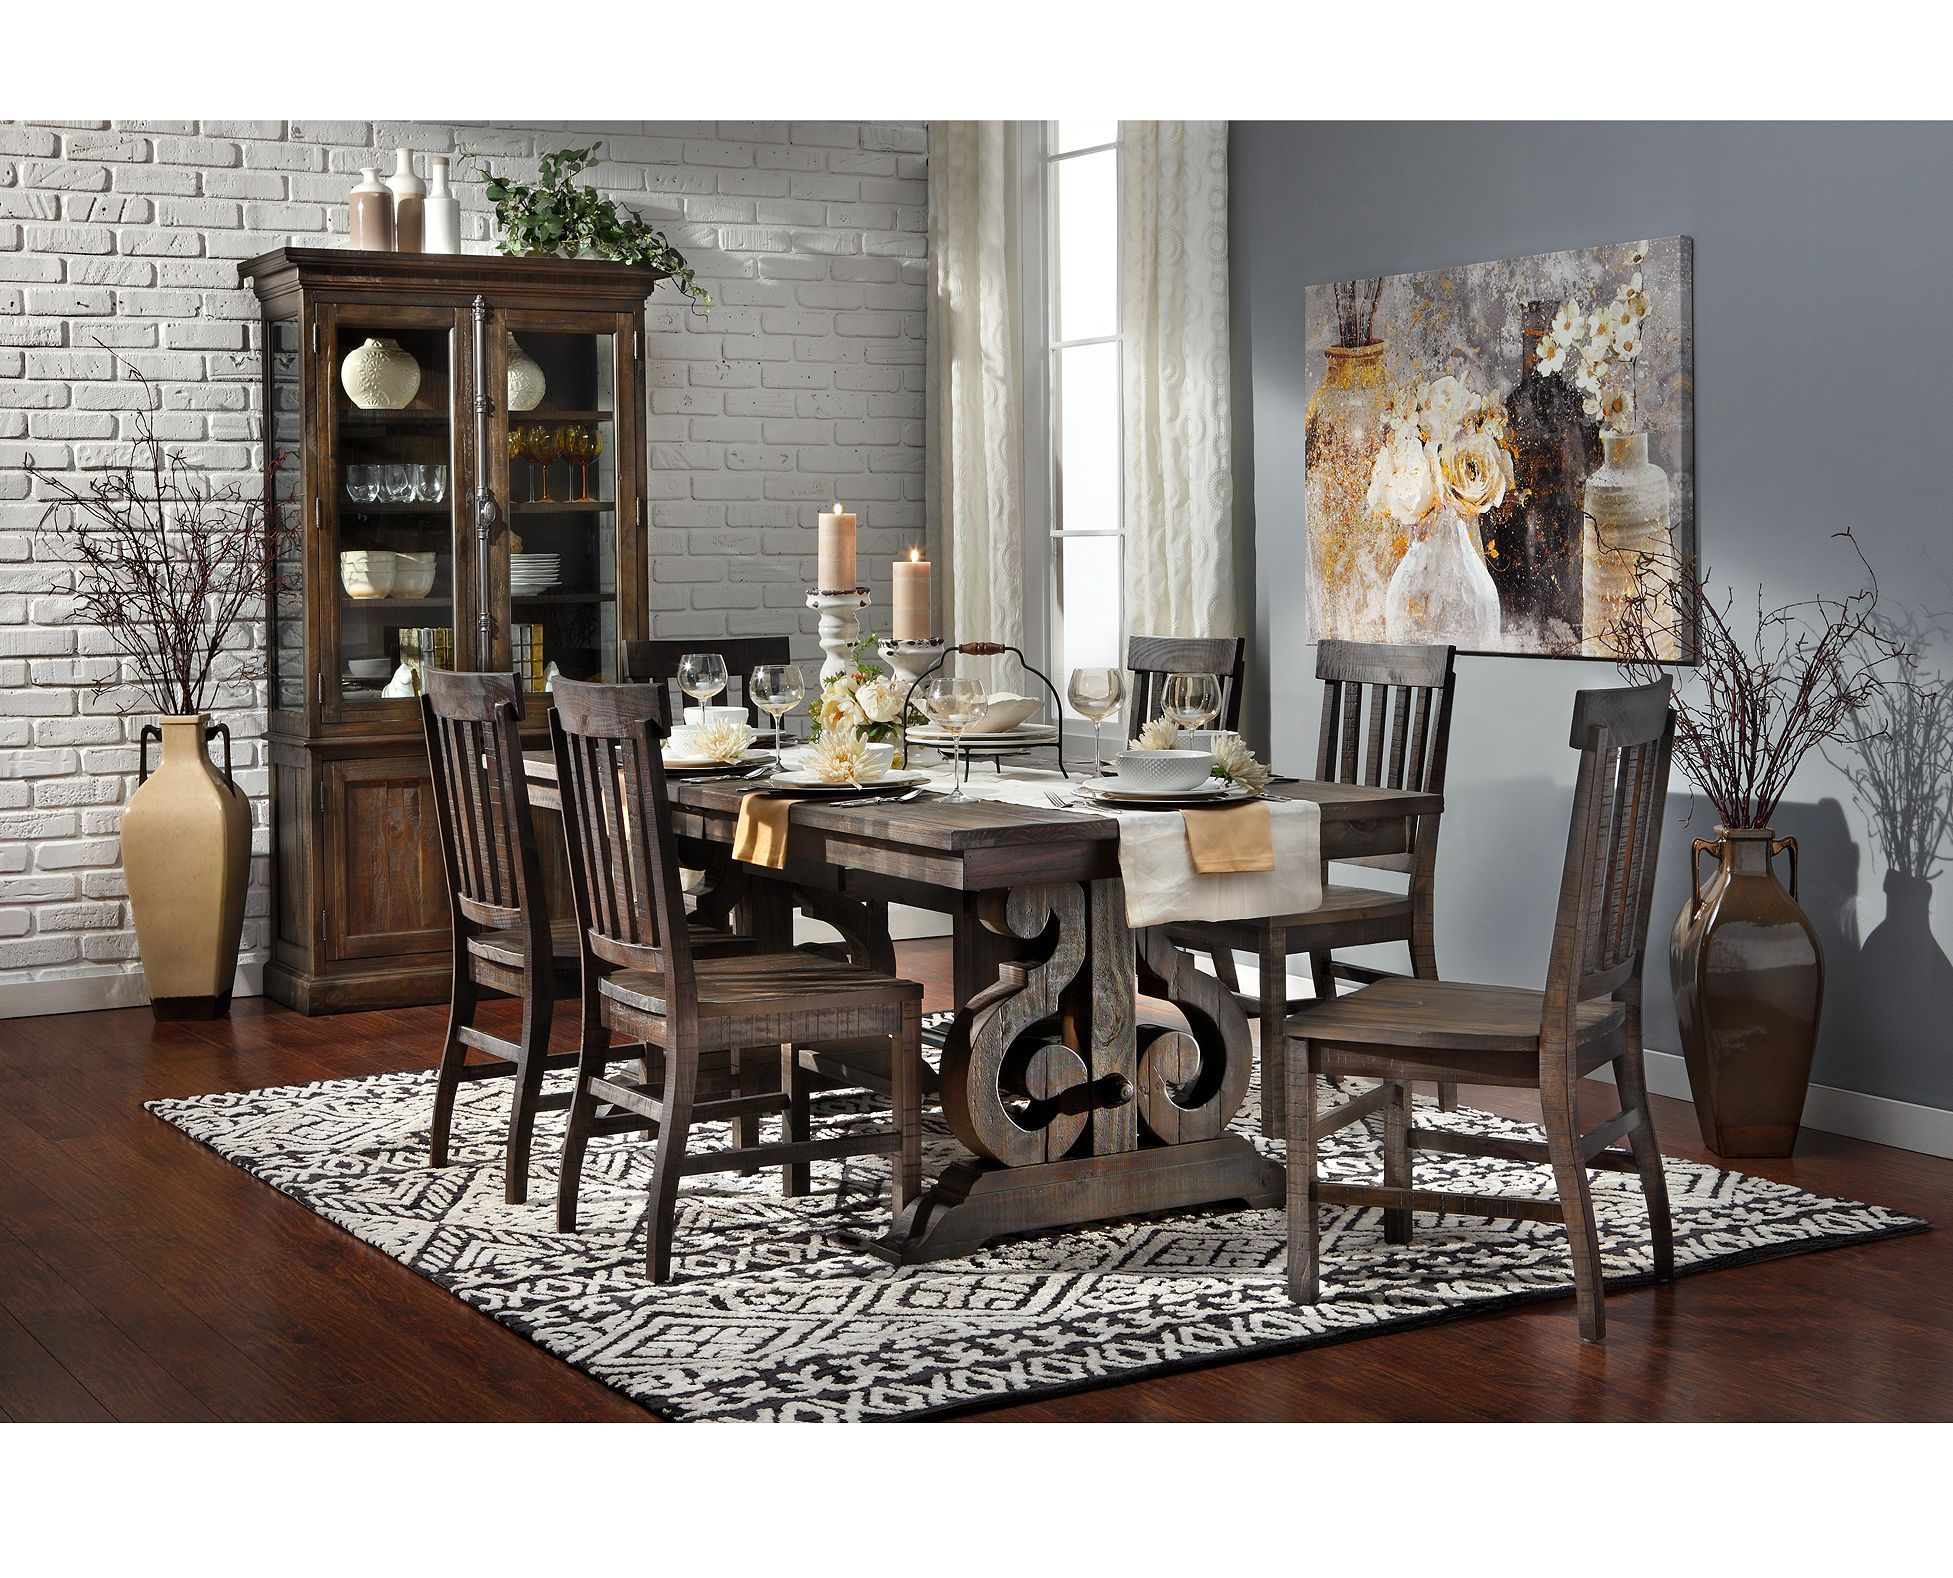 Sedona Dining Table  Rowe furniture, Dining room bench, Furniture